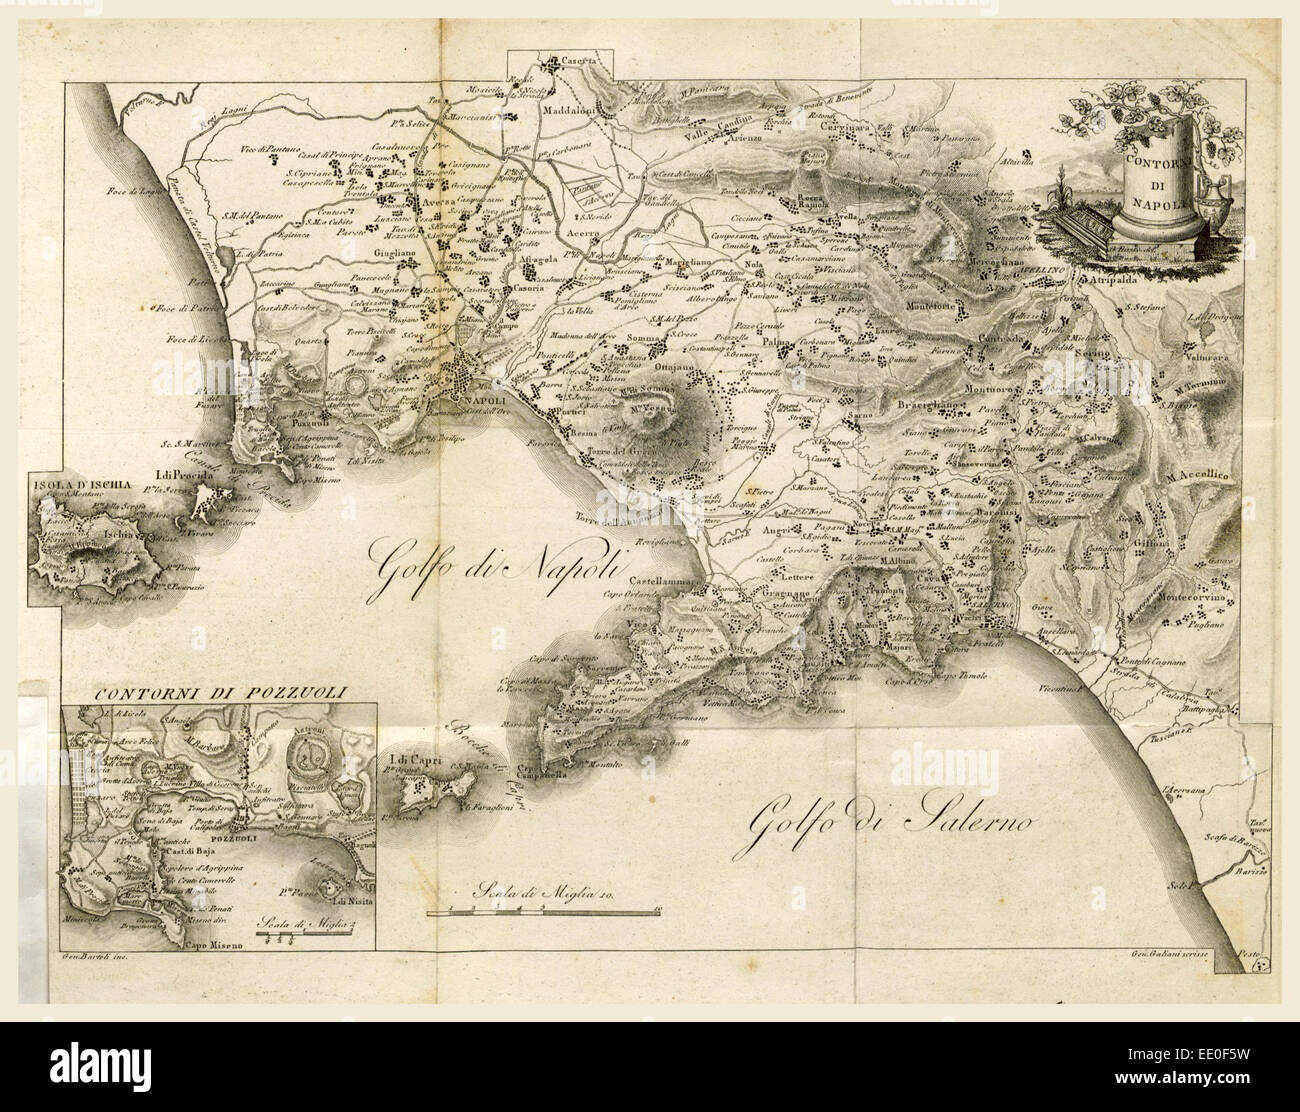 Map of Napels, Golf of Napels, Napoli e Contorni, Editore L. Galanti, Italy, 19th century engraving - Stock Image